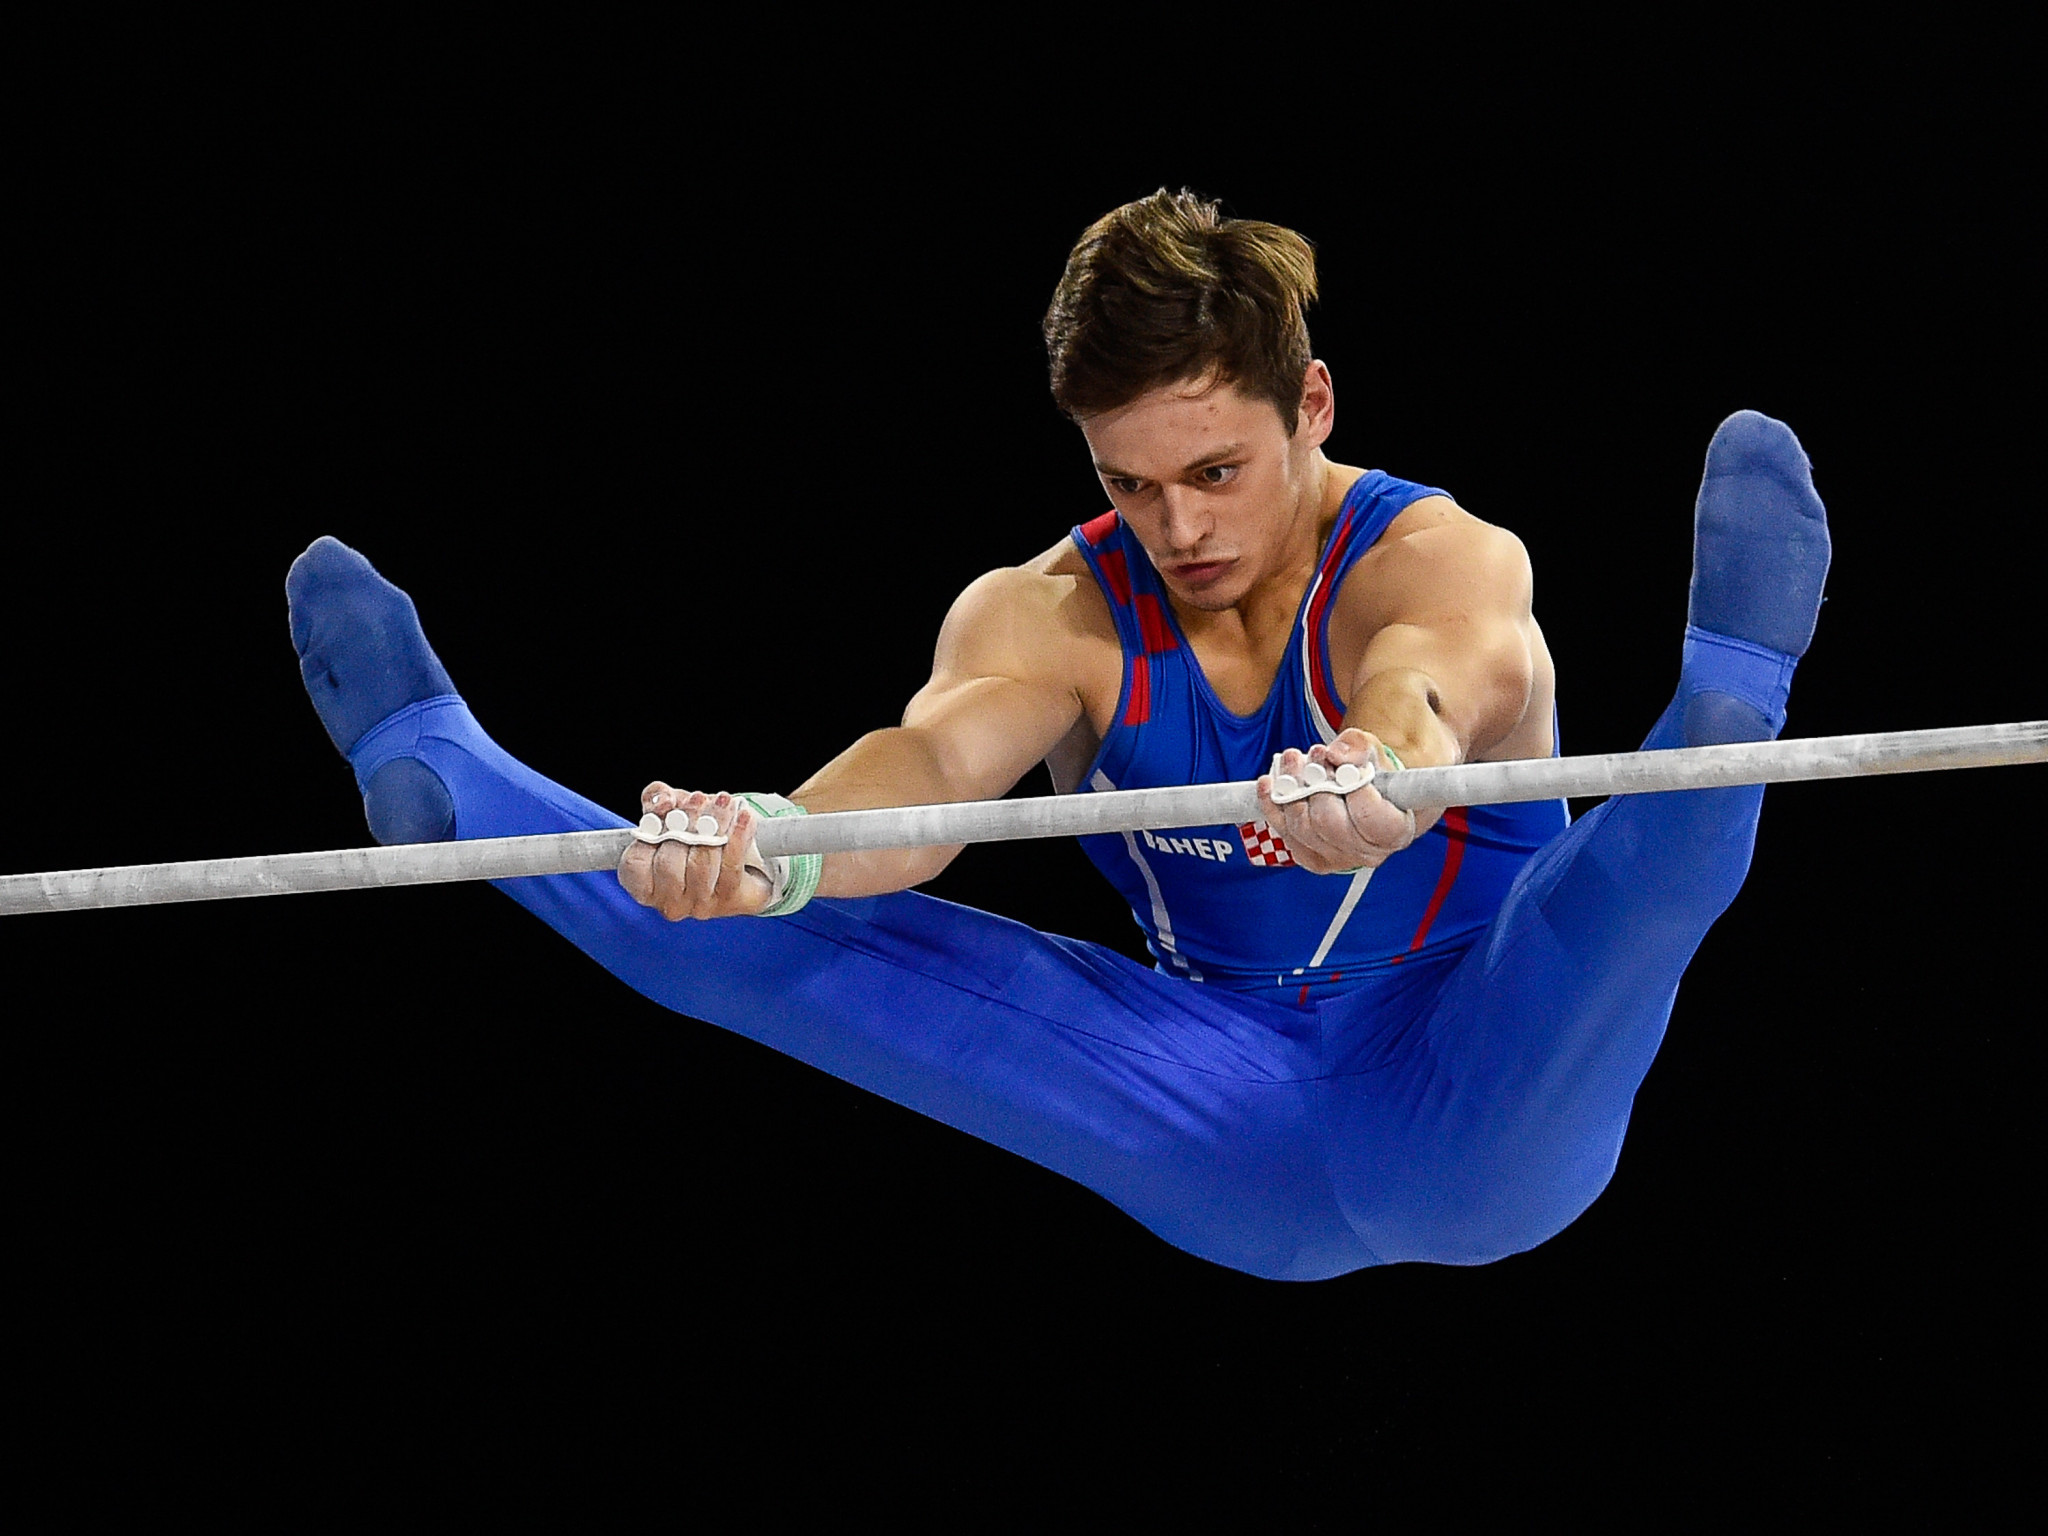 Srbic earns Croatia's maiden Artistic Gymnastics World Championships gold on final day in Montreal